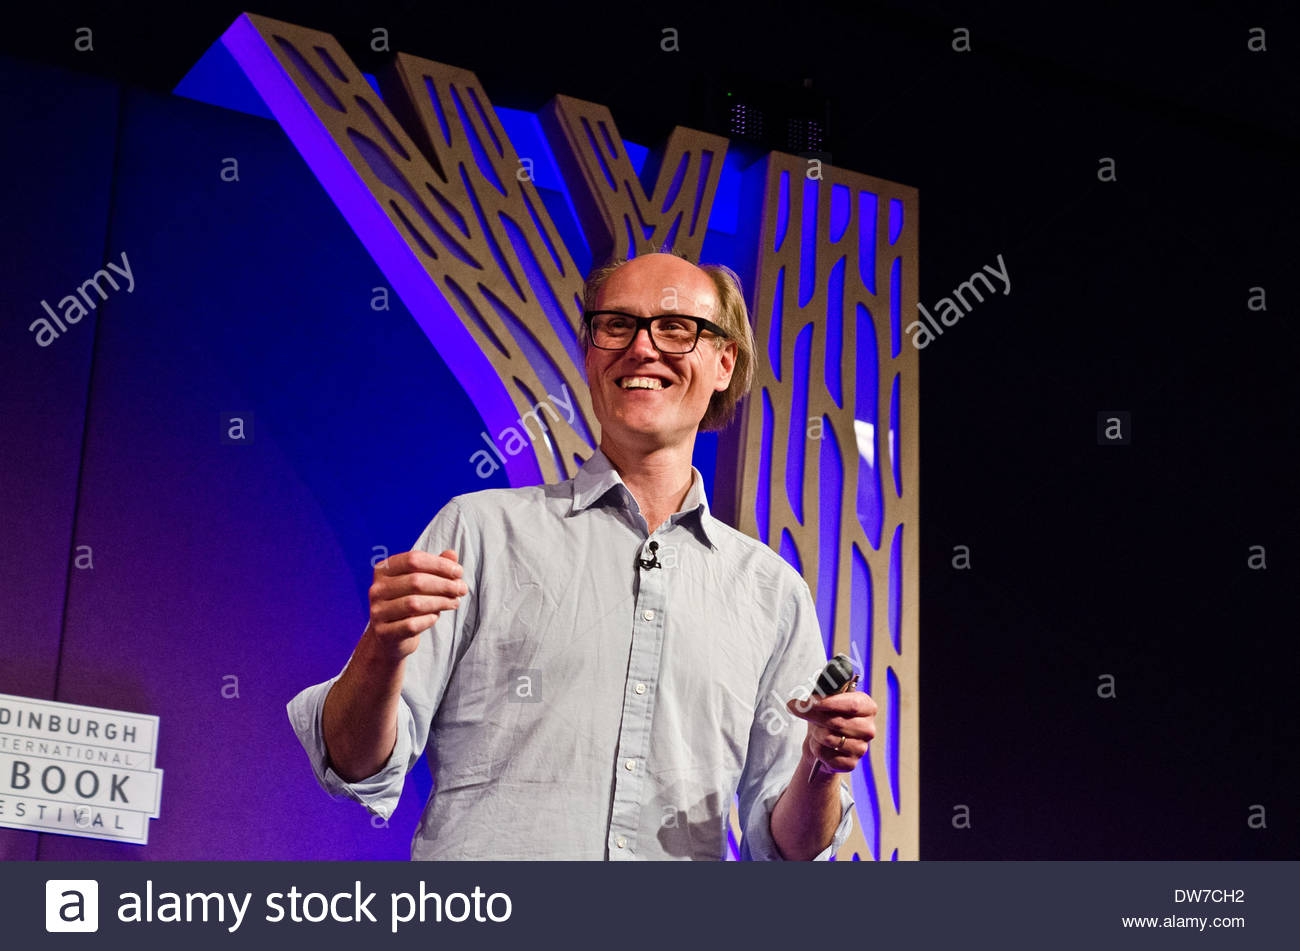 British broadcaster and writer Will Gompertz at the Edinburgh International Book Festival. He is the BBC's arts editor. - Stock Image